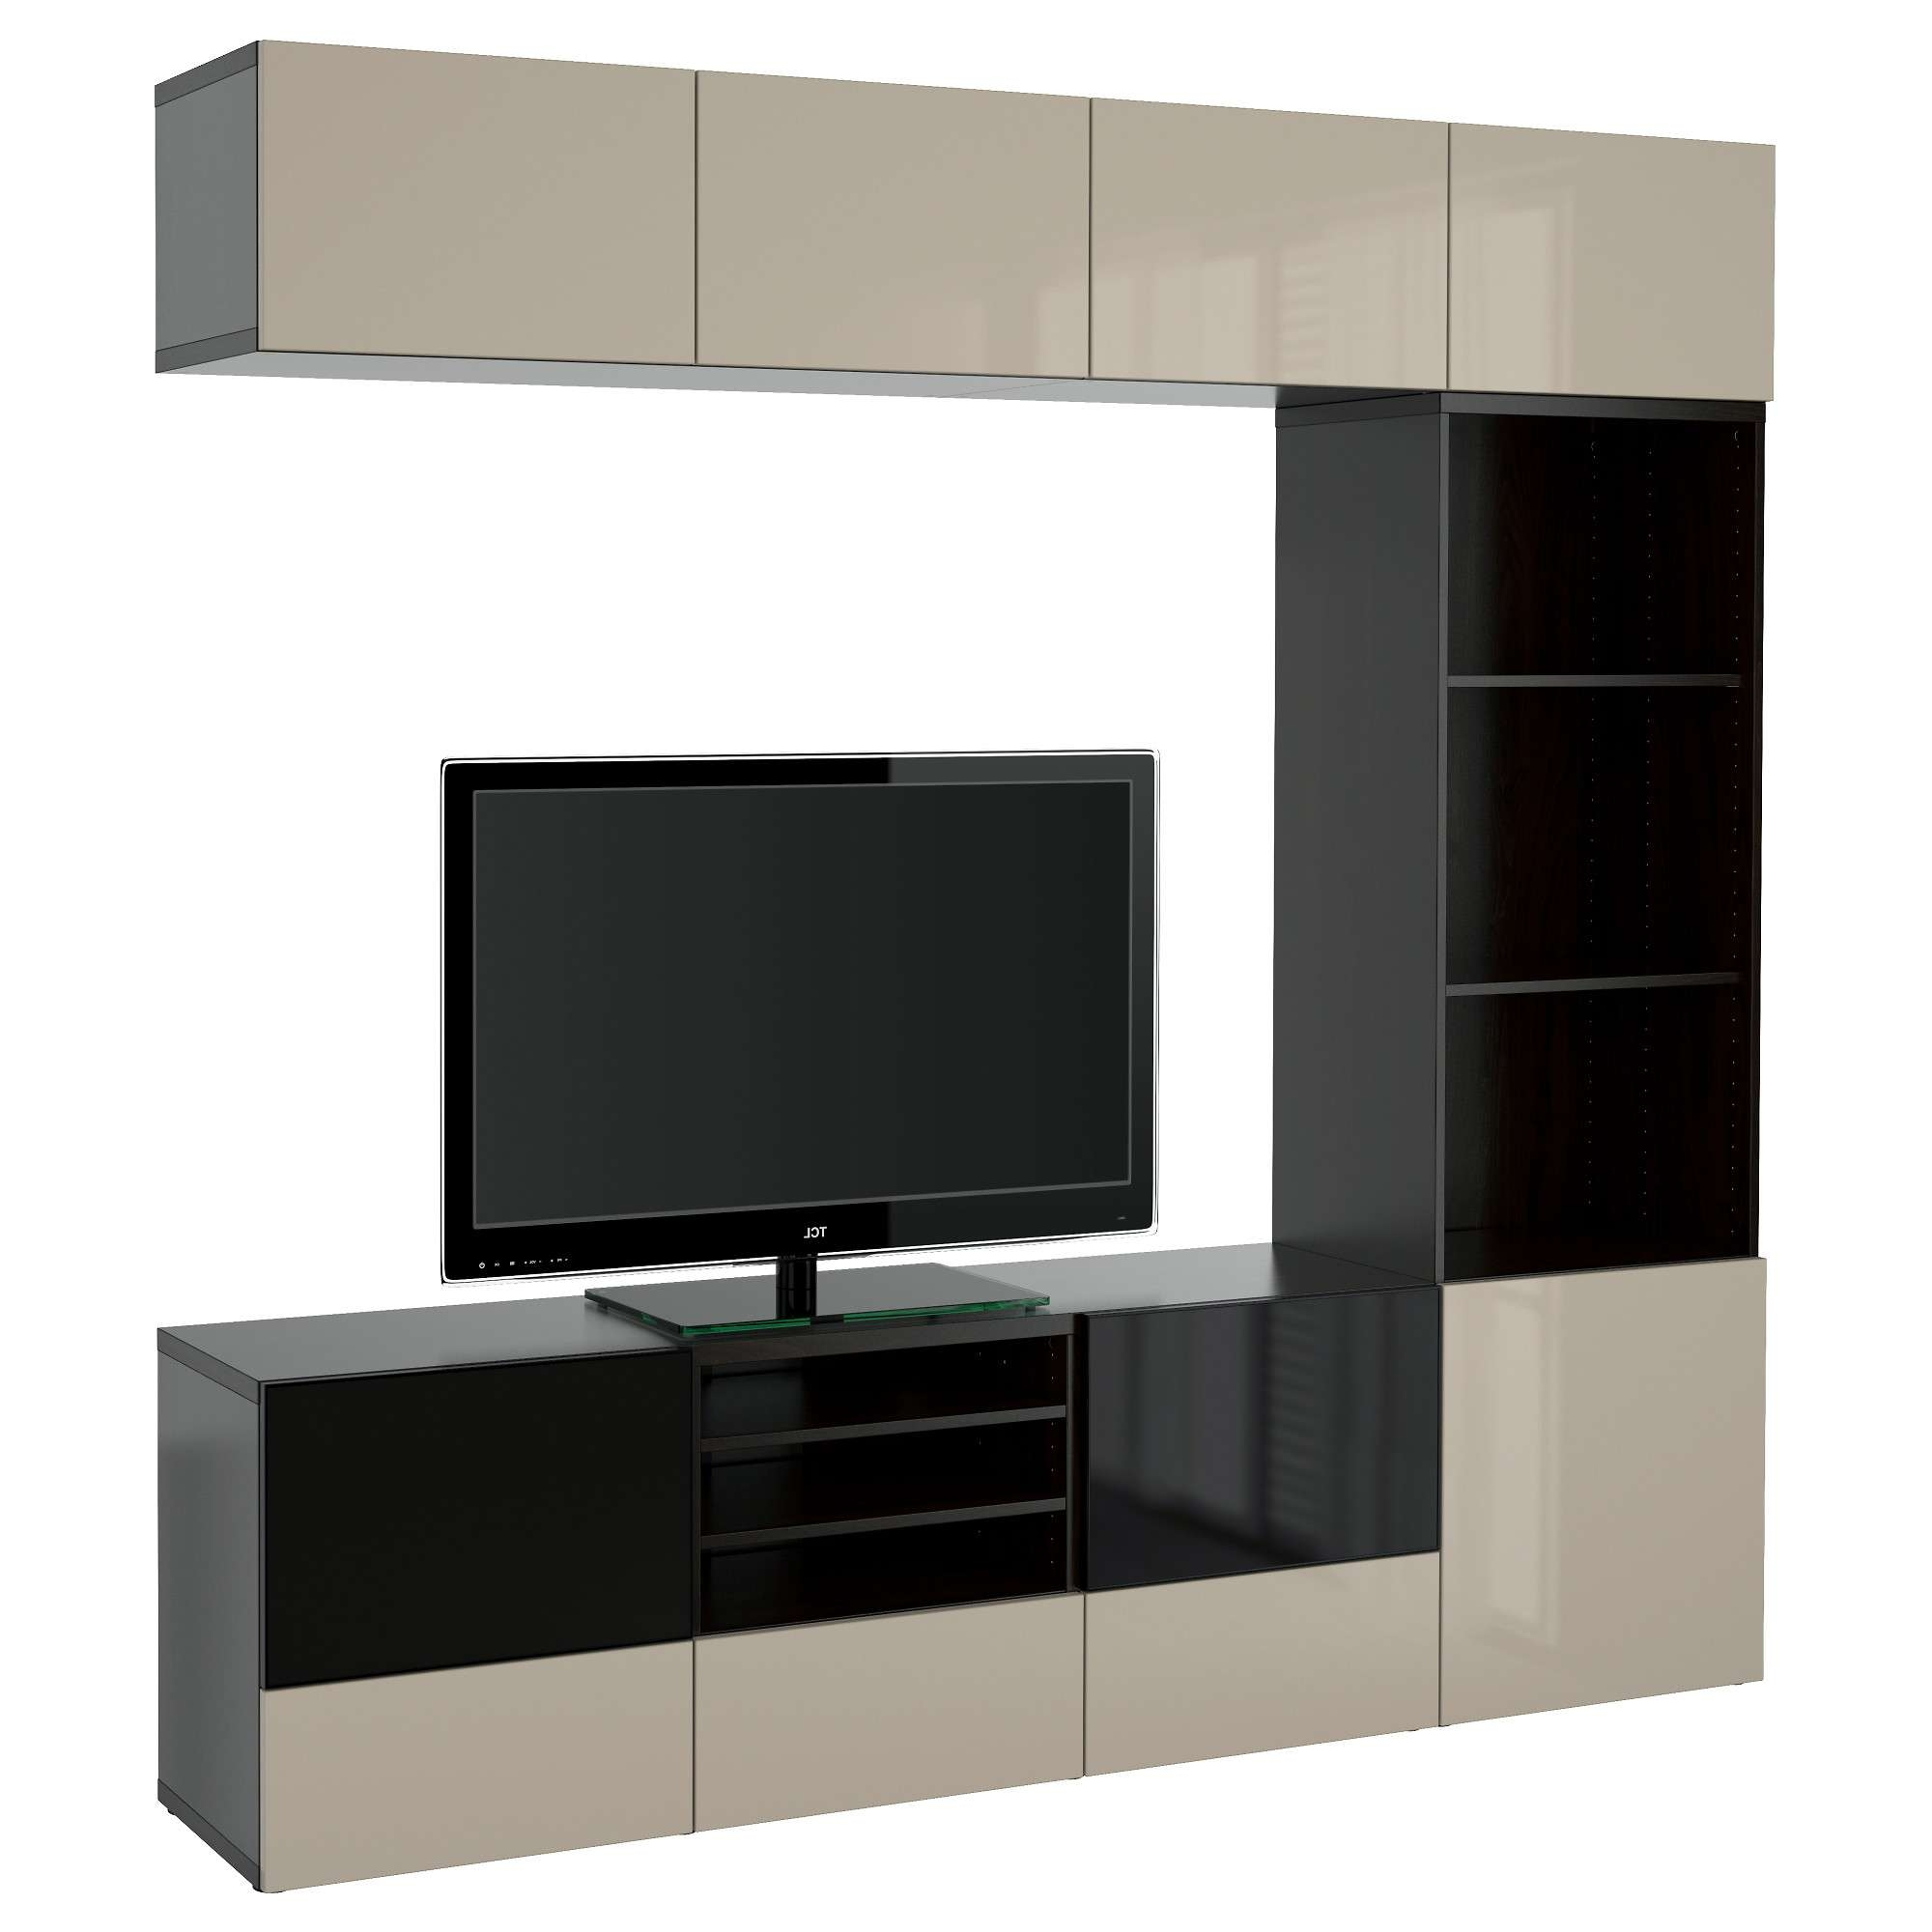 Bestå Tv Storage Combination/glass Doors Black Brown/selsviken Intended For Tv Cabinets With Glass Doors (View 1 of 20)